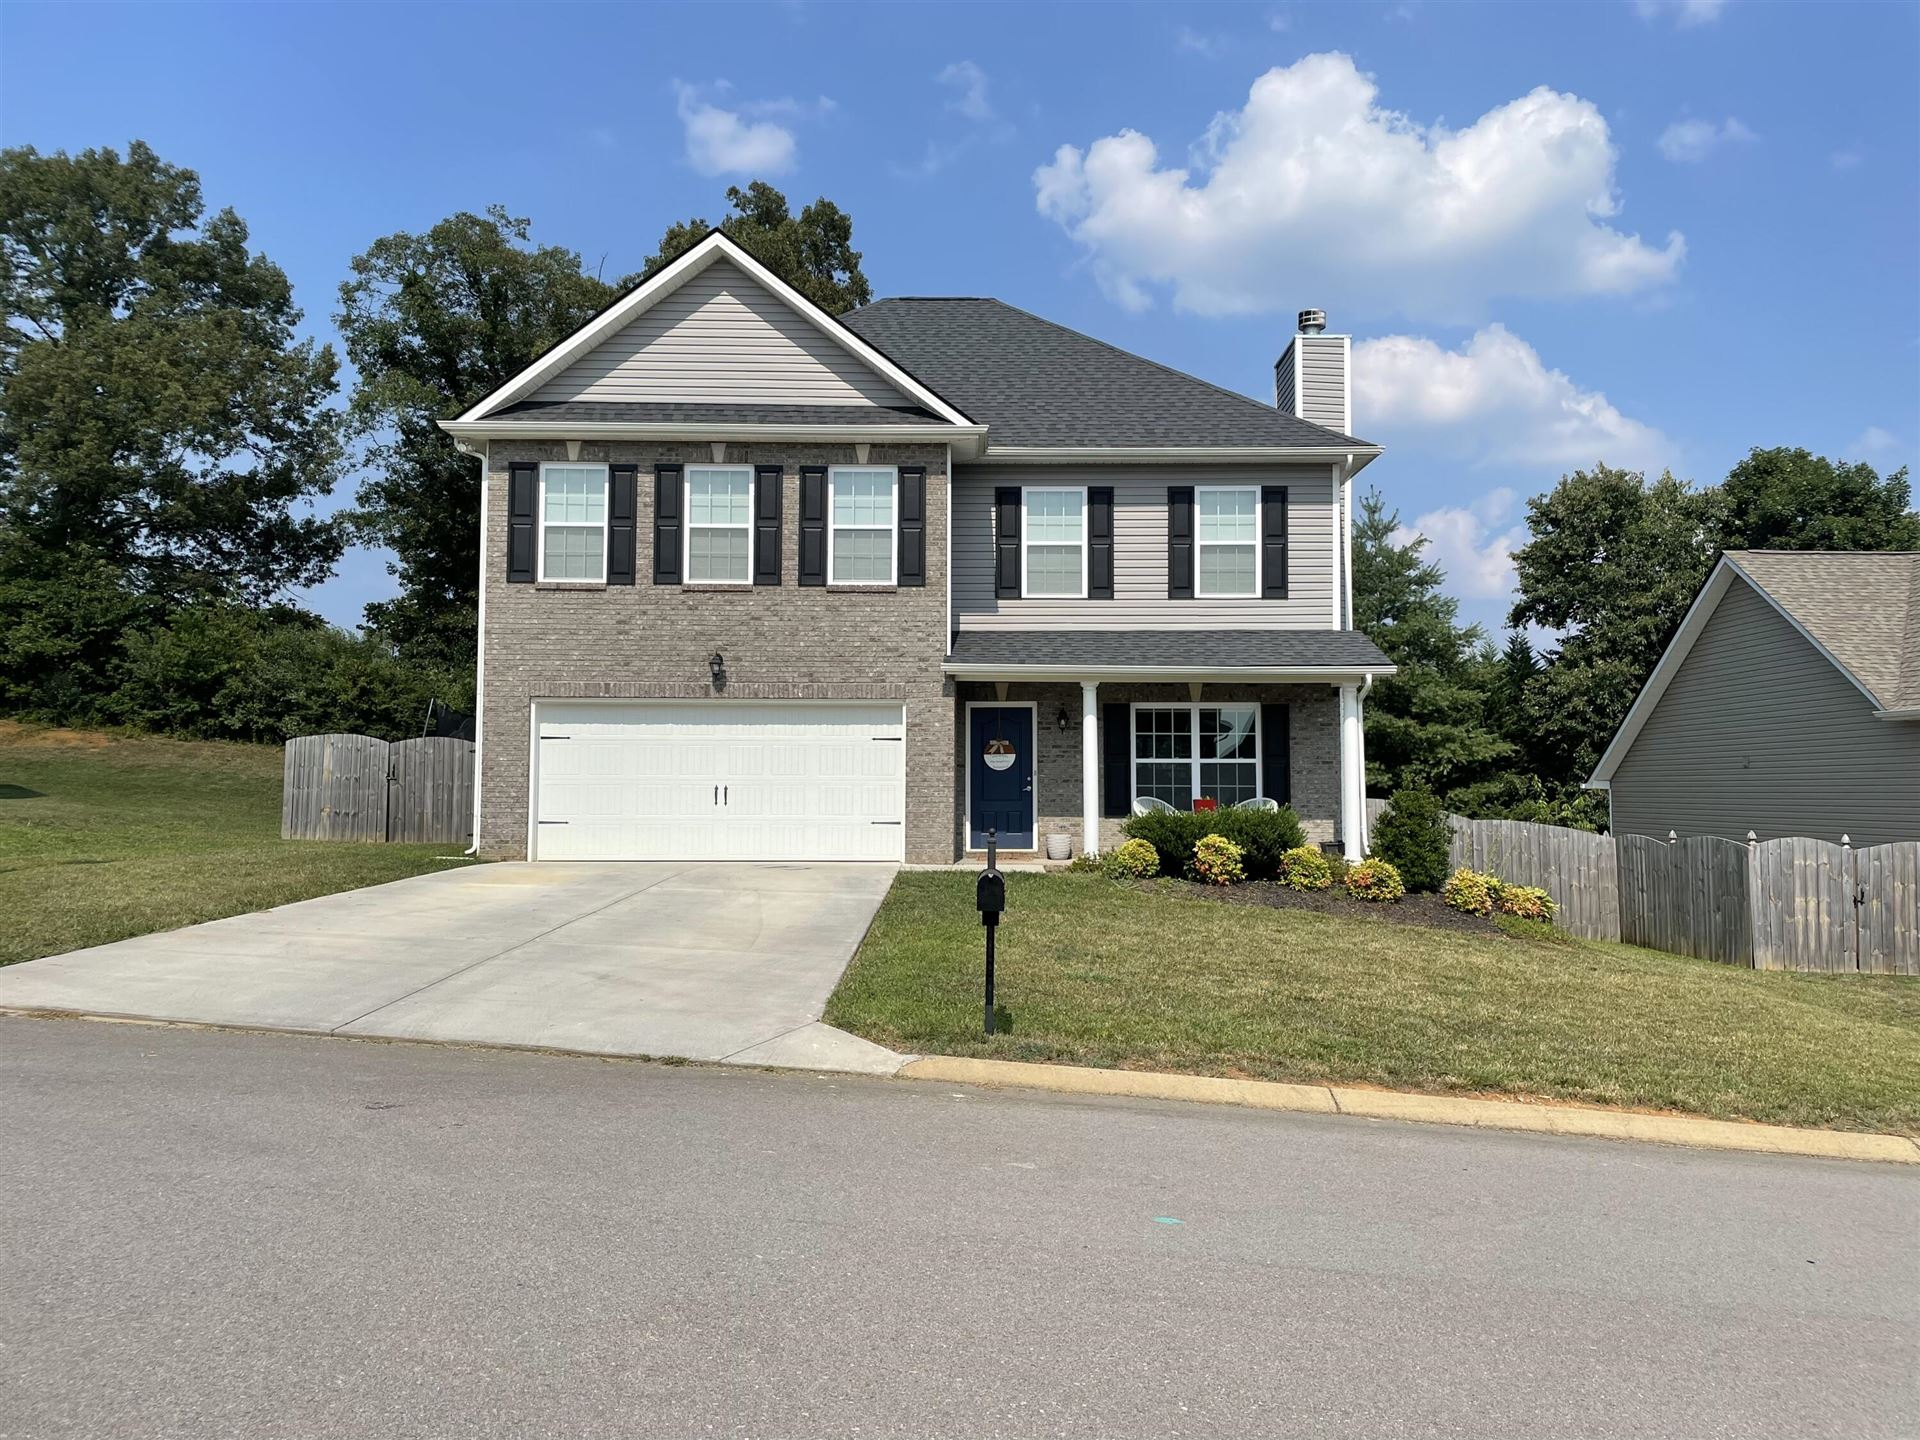 Photo of 2748 Southwinds Circle, Sevierville, TN 37876 (MLS # 1161522)